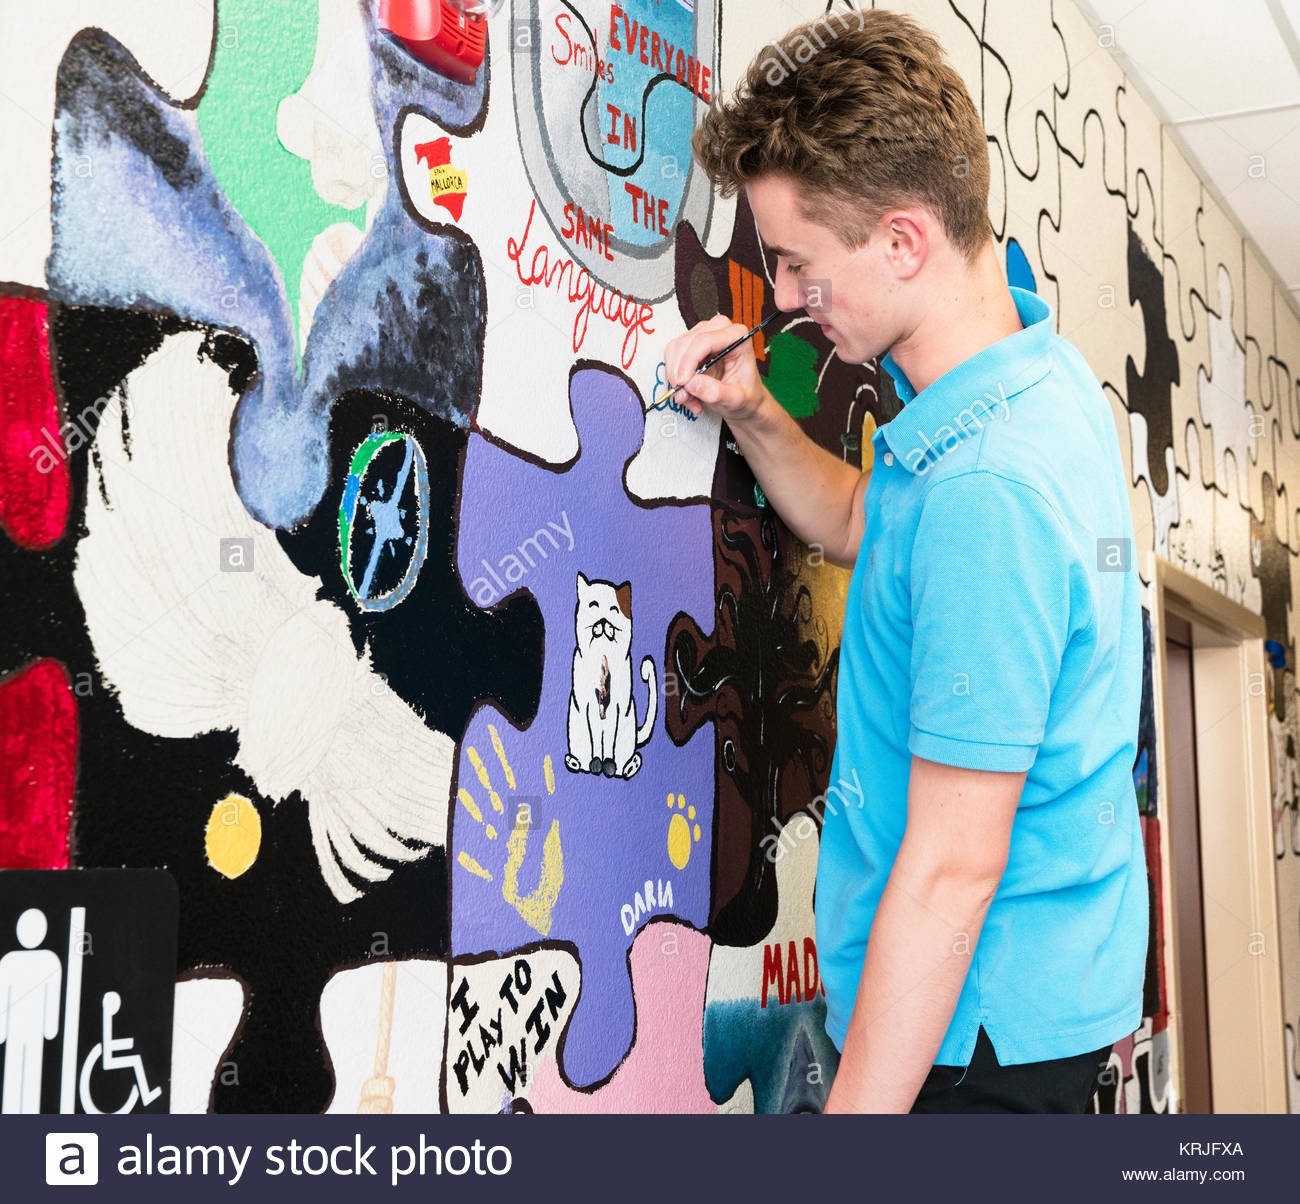 Caucasian boy painting mural on wall in school - Stock Image